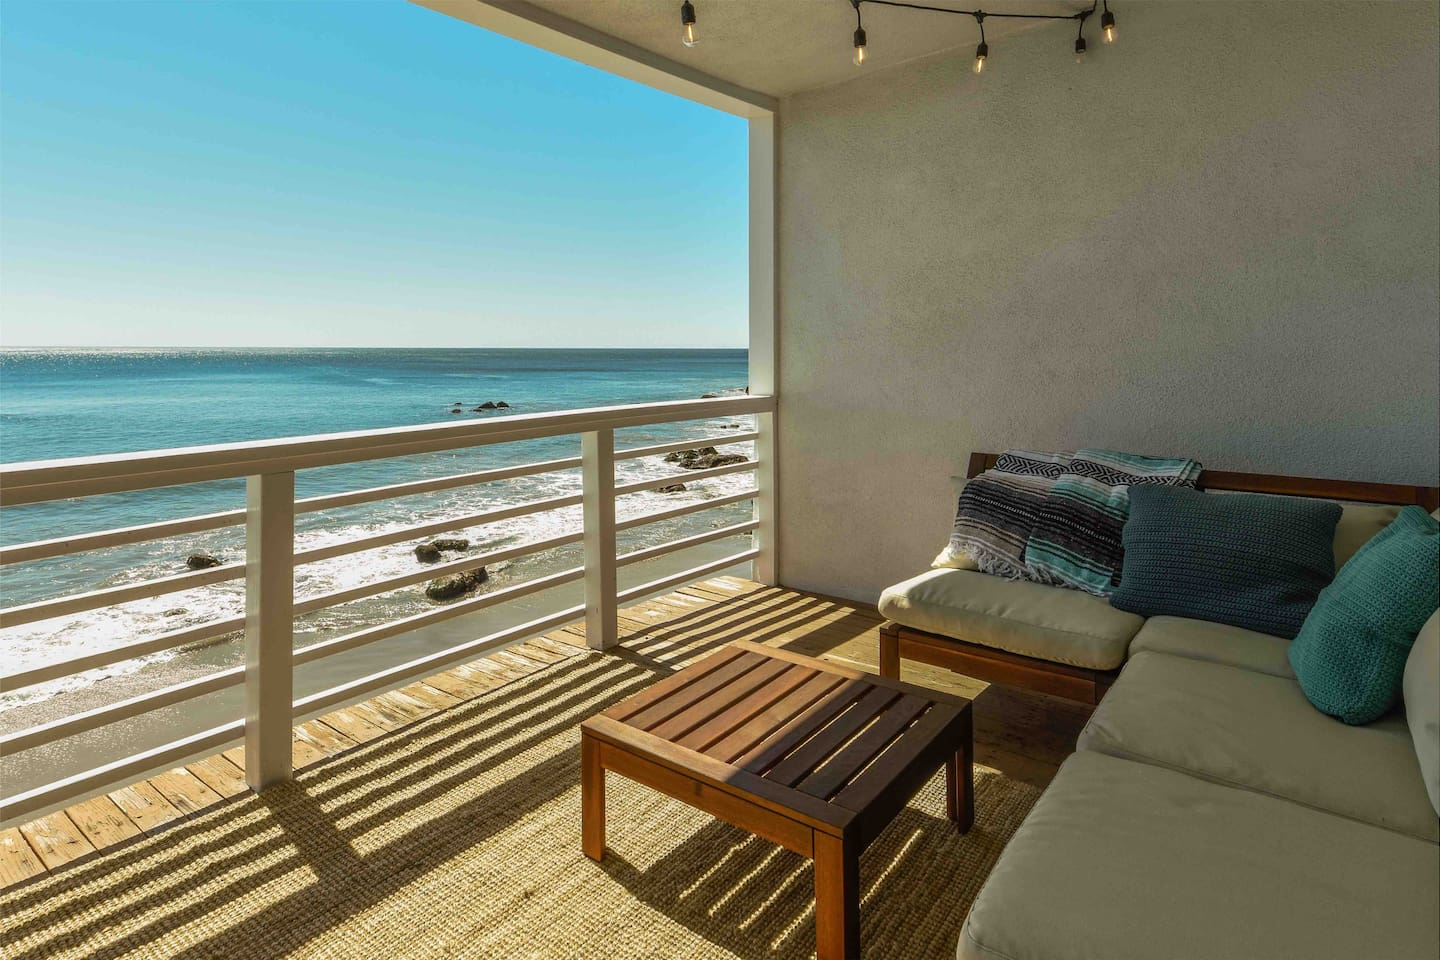 View from private patio with lounge seating and a table for 2 or 4 overlooking Malibu beach